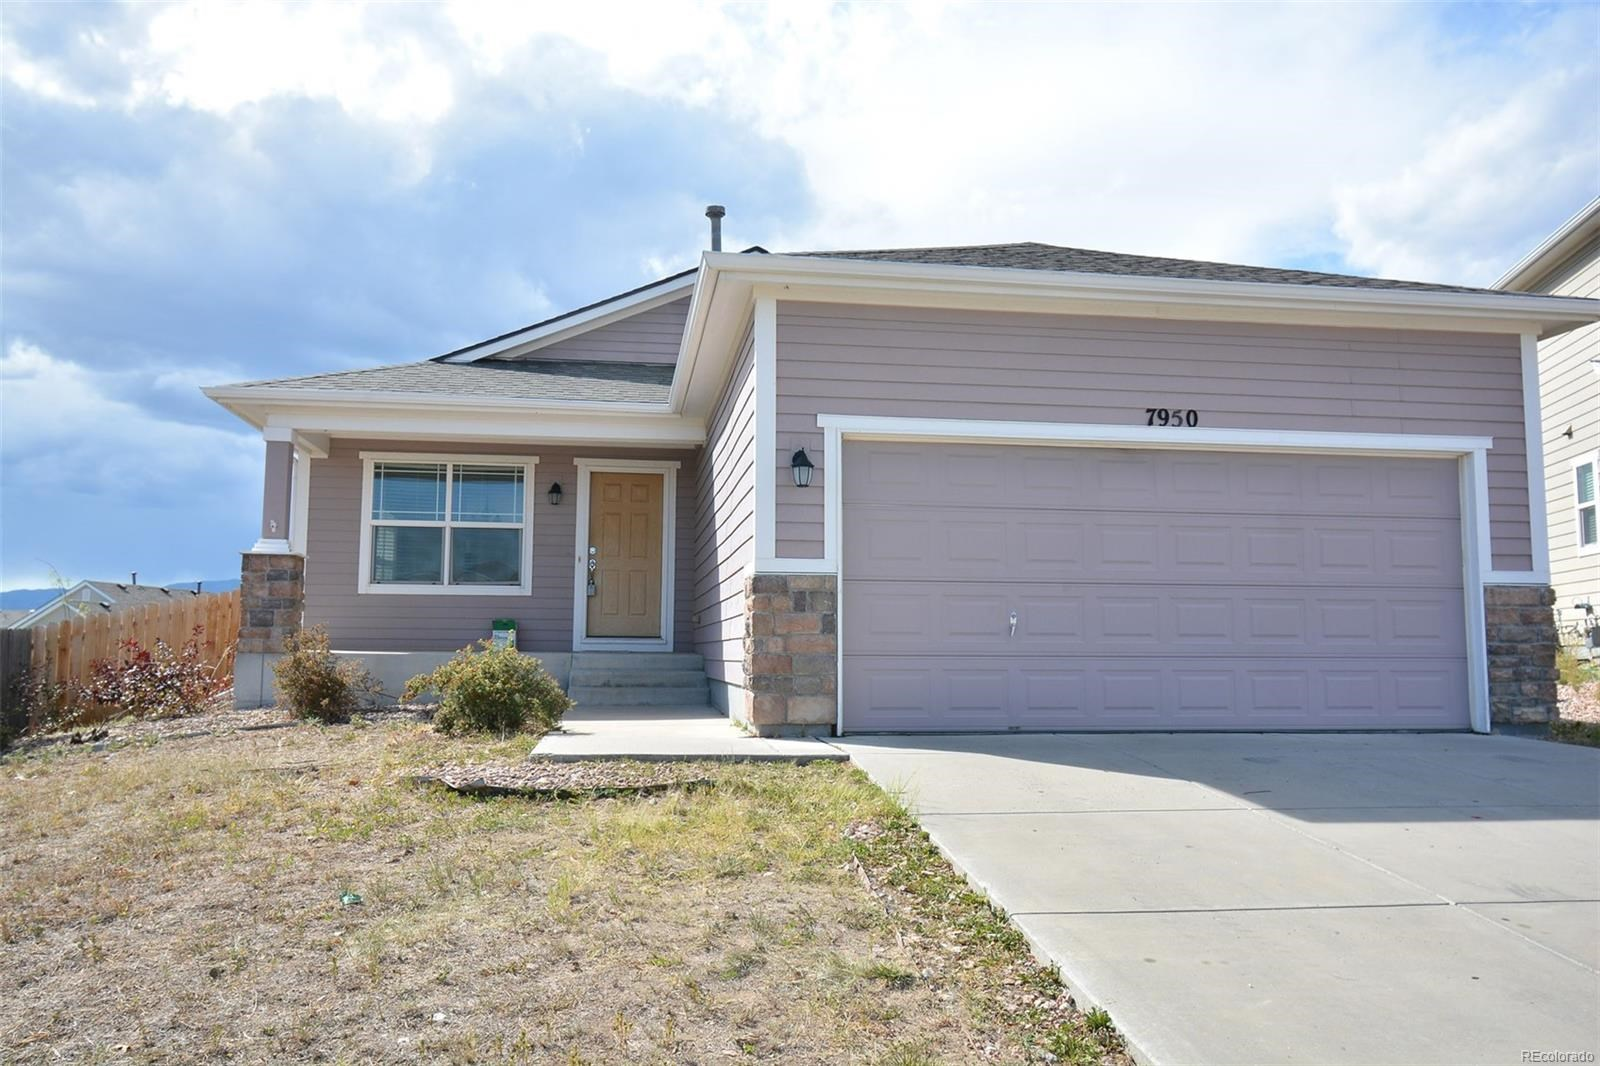 MLS# 7575005 - 1 - 7950 Calamint Court, Fountain, CO 80817